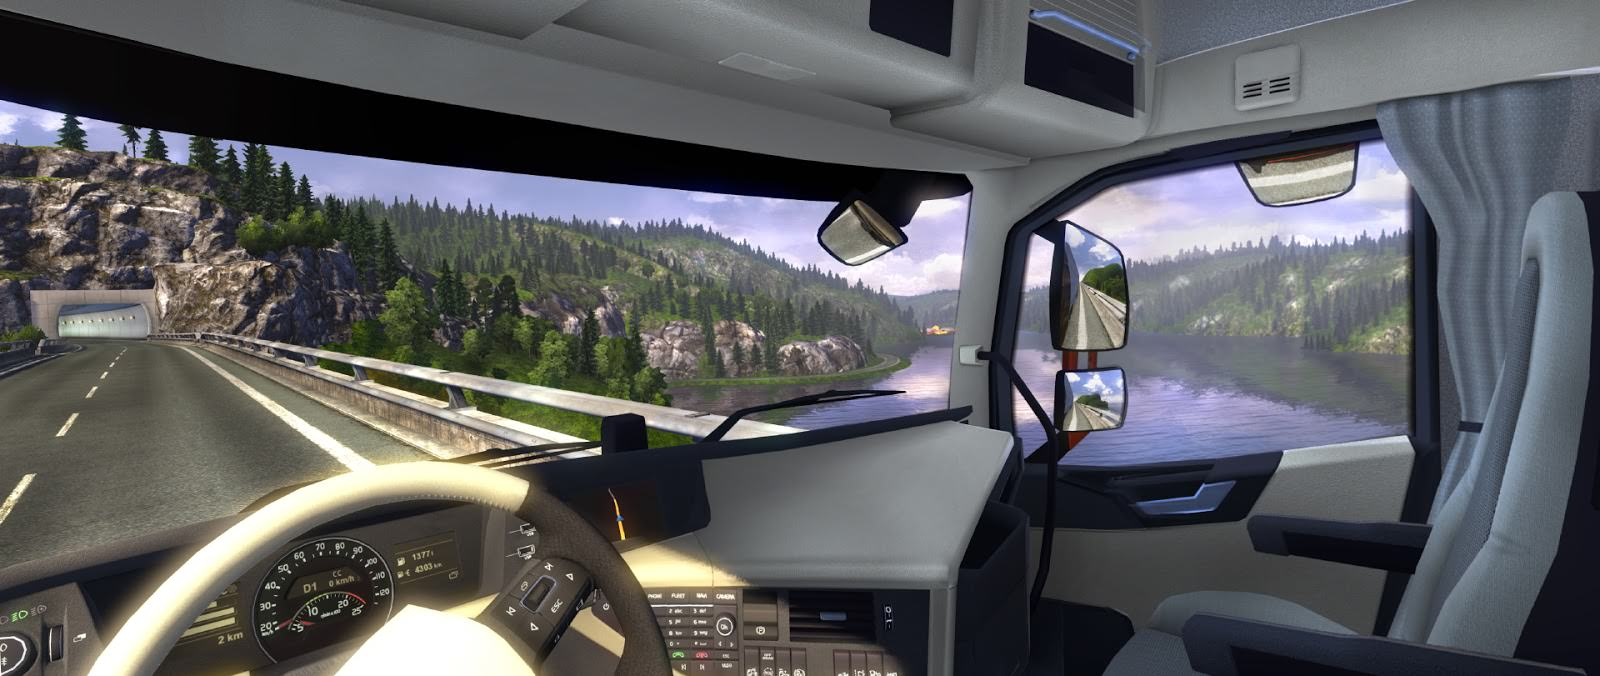 ets2-some-nordic-3